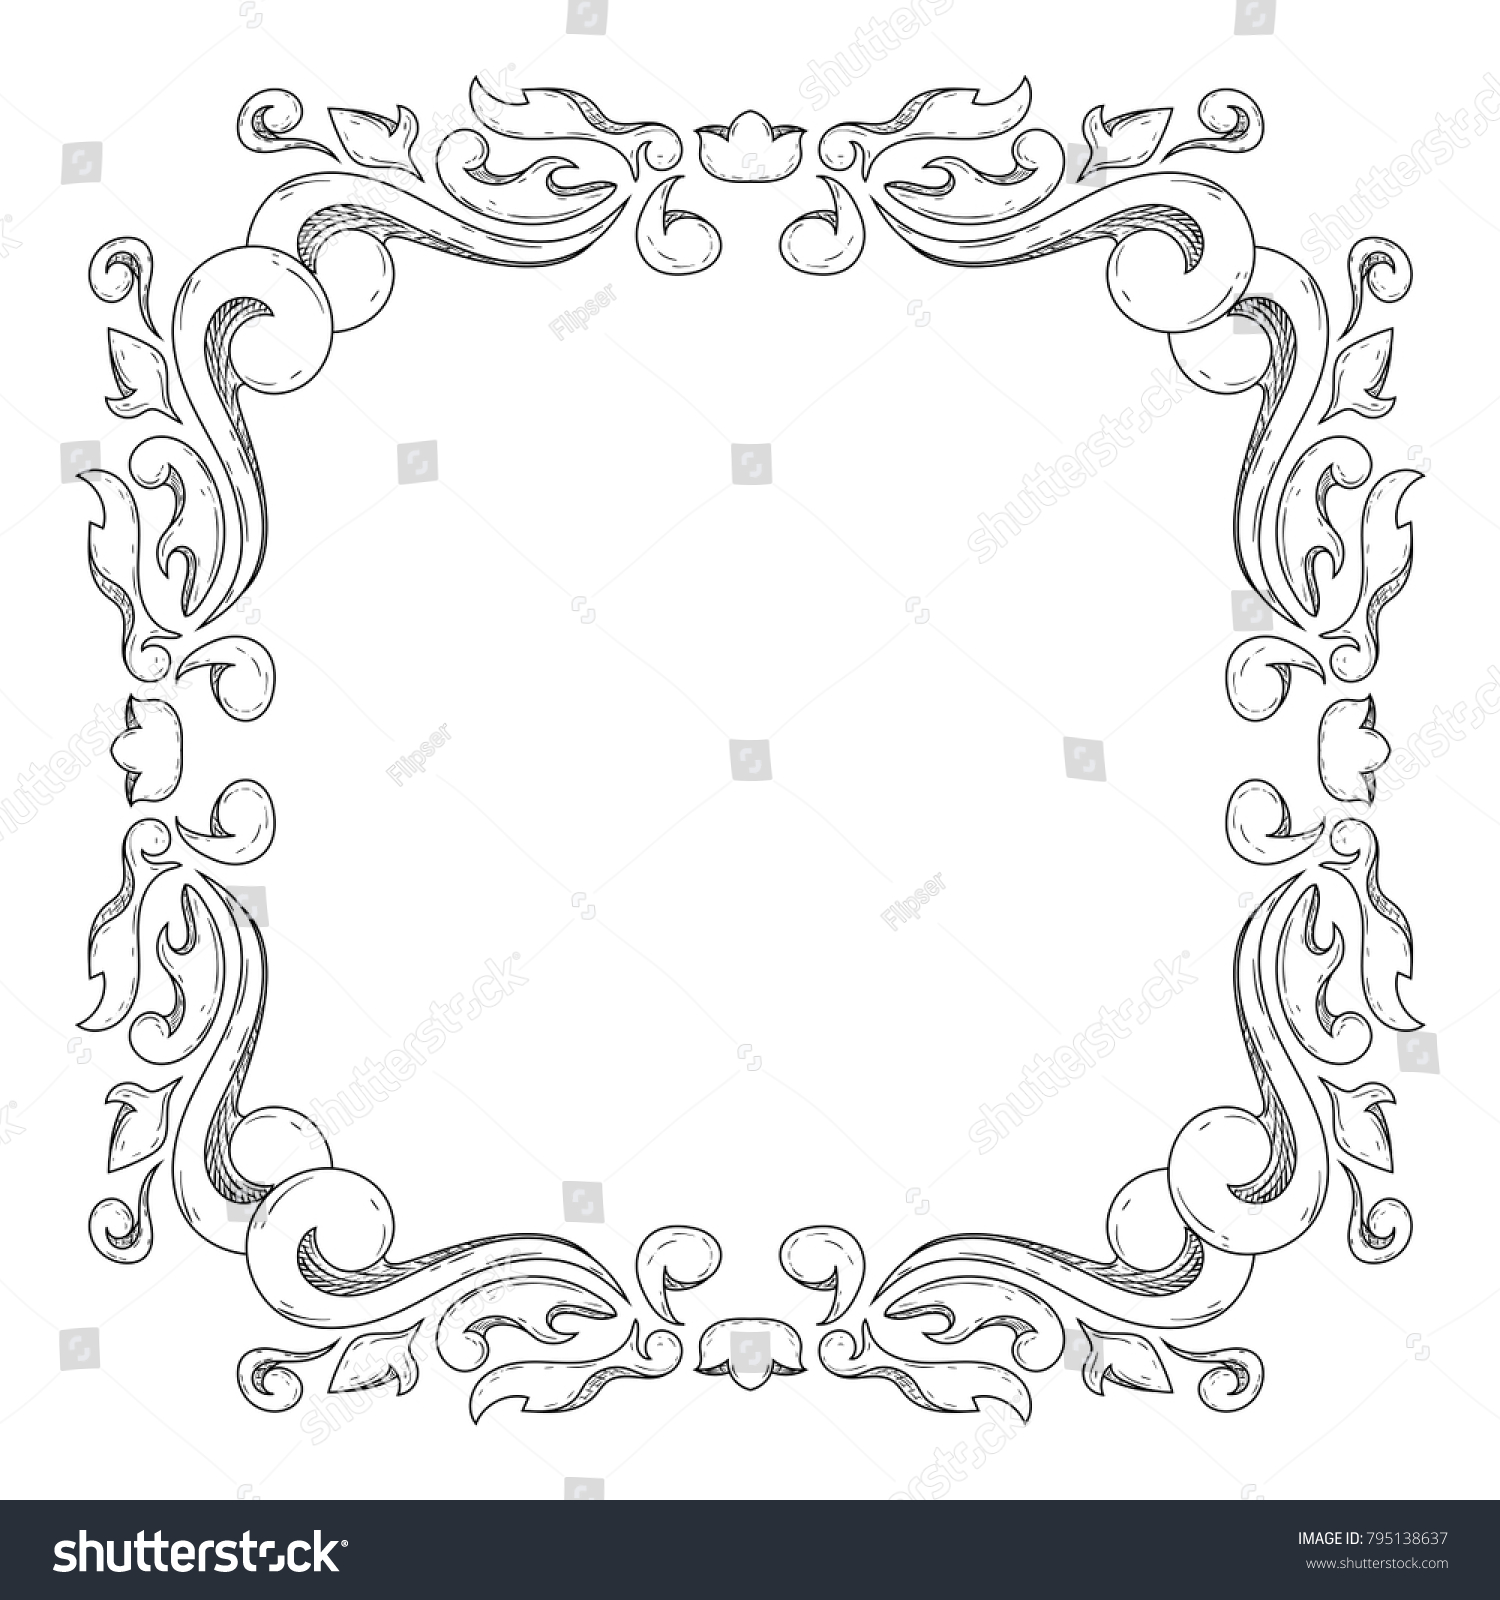 Floral vintage frame. White decorative ornament isolated on white ...